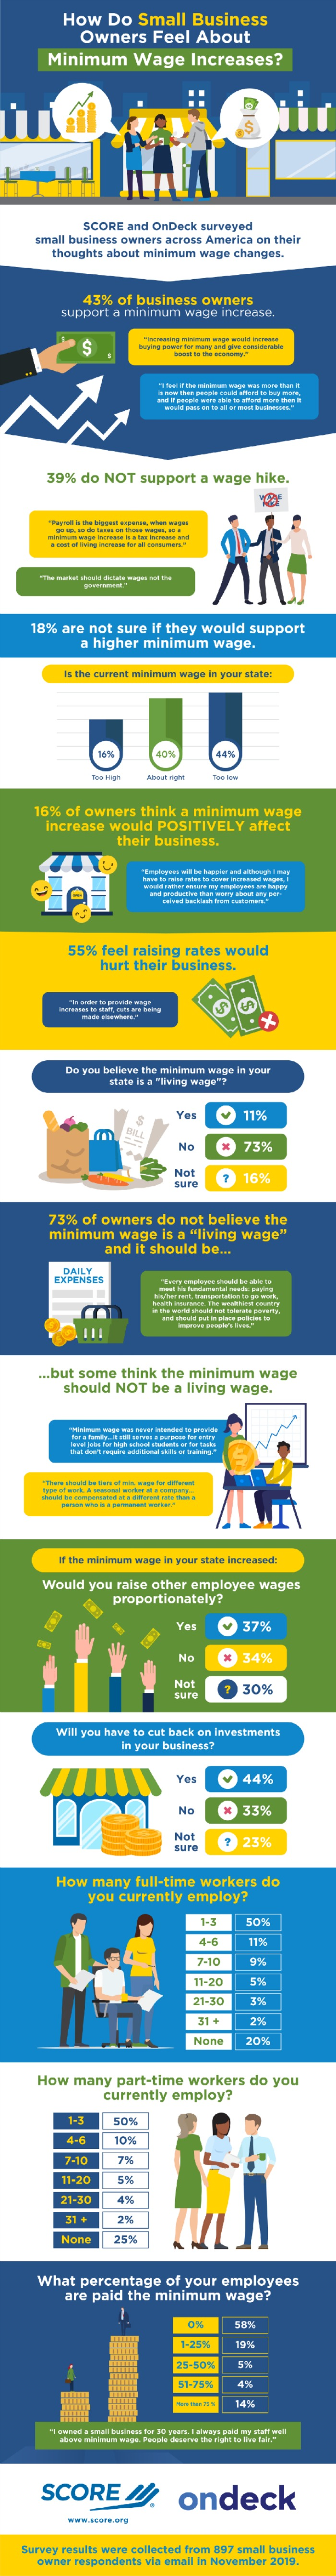 Infographic: How Do Small Business Owners Feel About Minimum Wage Increases?